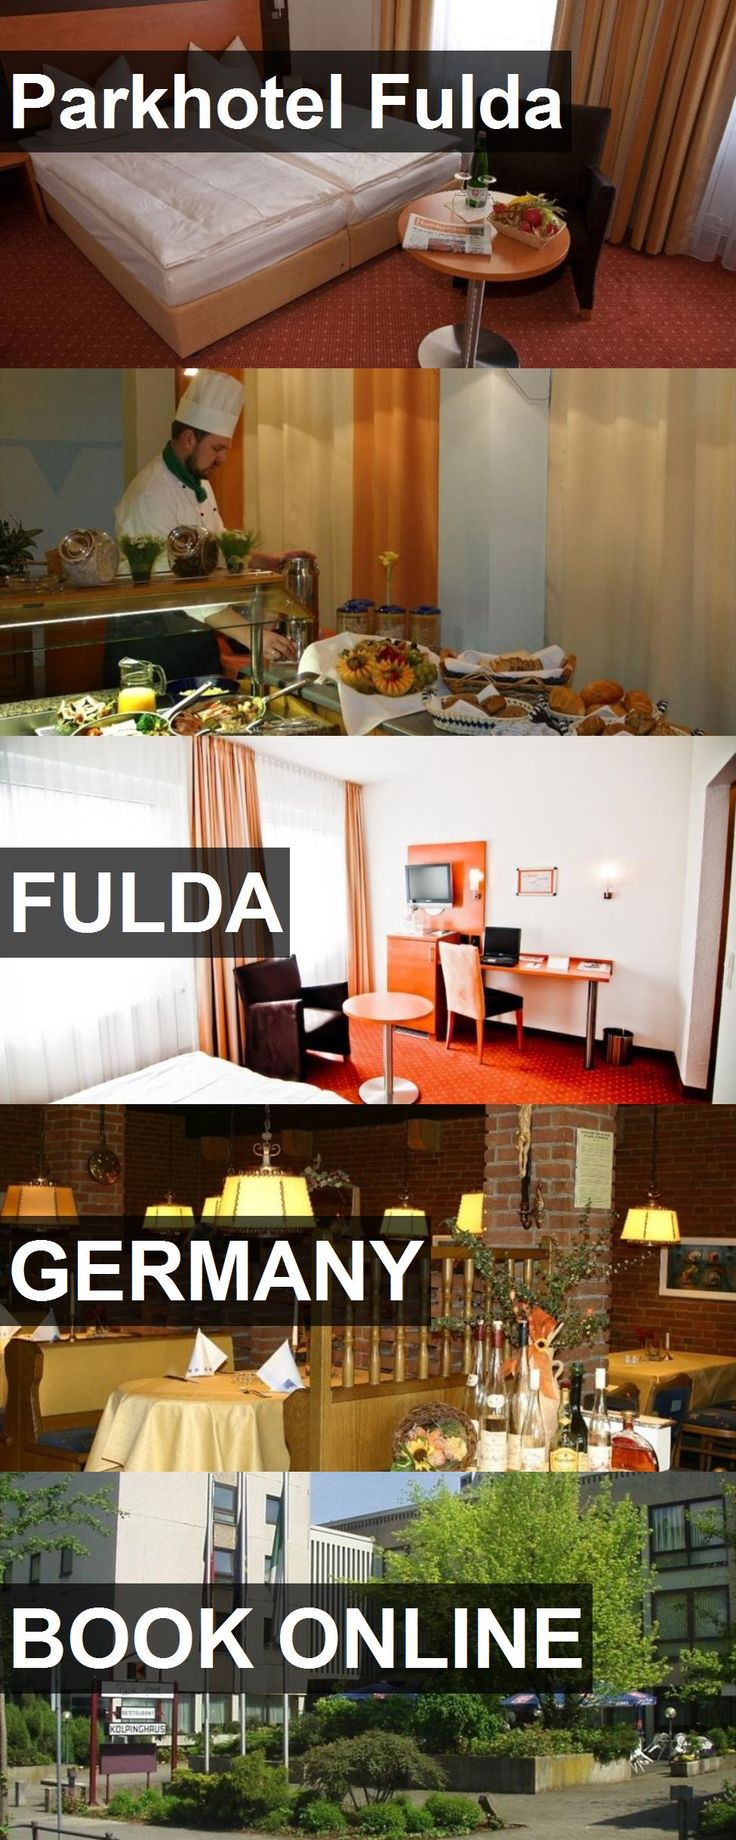 Parkhotel Fulda in Fulda, Germany. For more information, photos, reviews and best prices please follow the link. #Germany #Fulda #travel #vacation #hotel